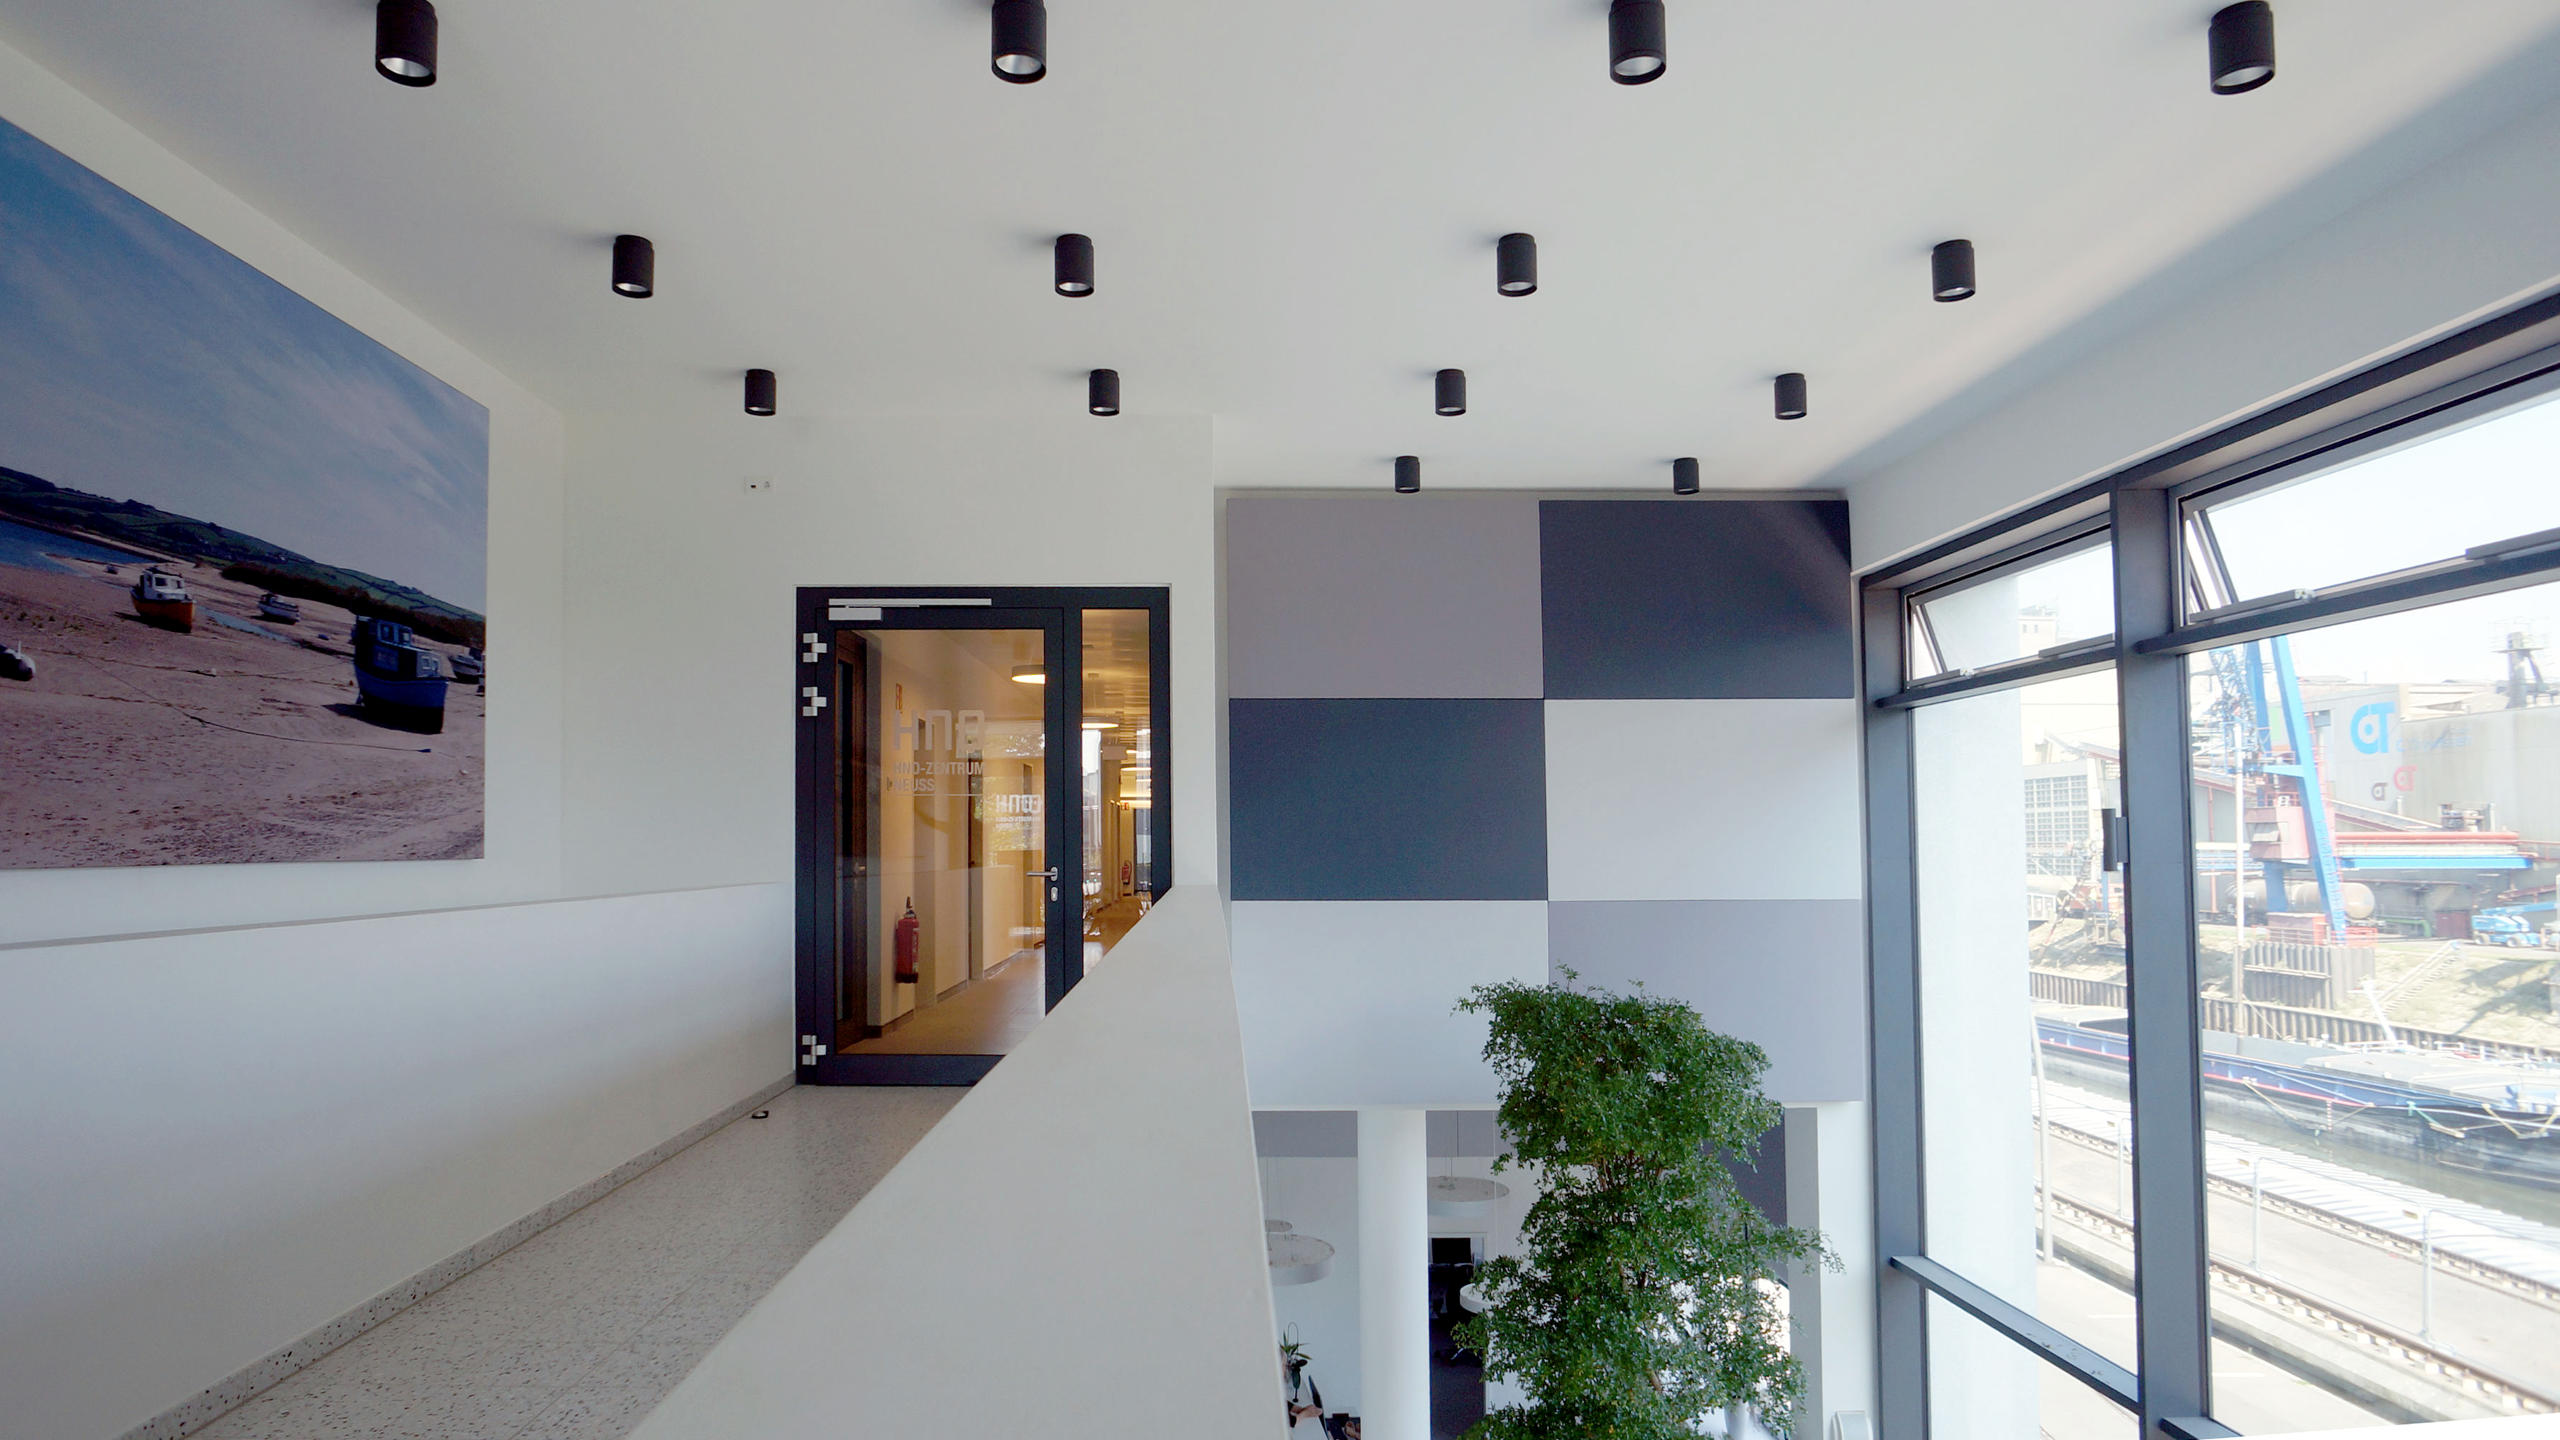 A700 Wall modules above reception